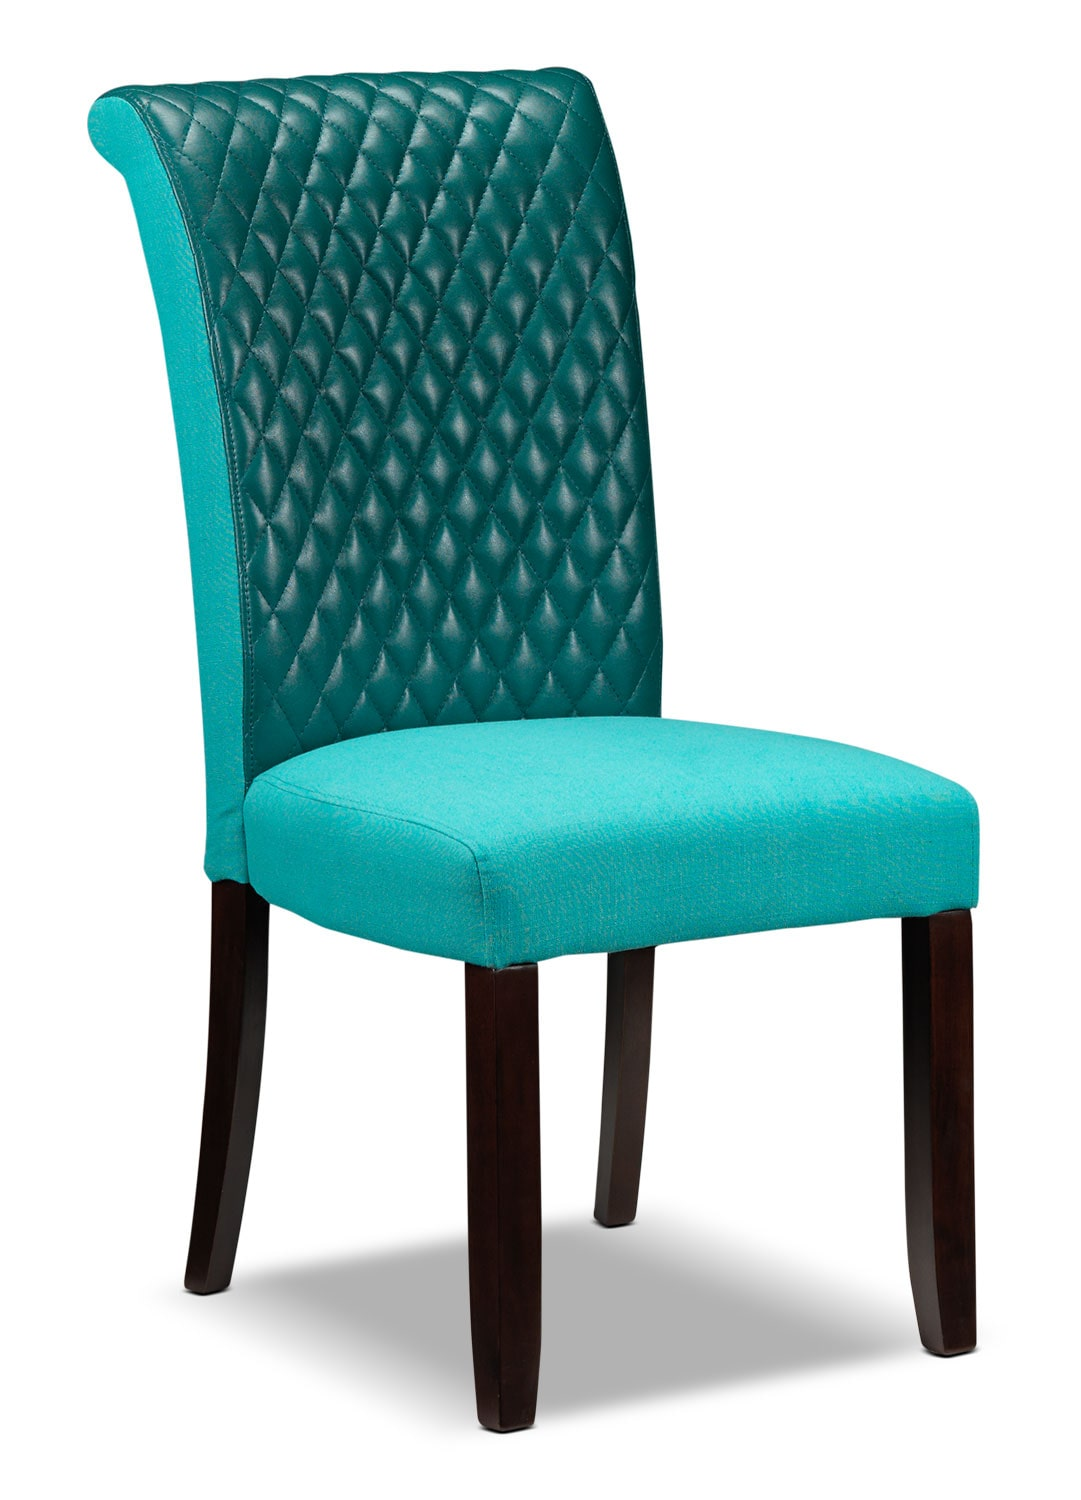 Teal Chair Teal Chair Images Reverse Search